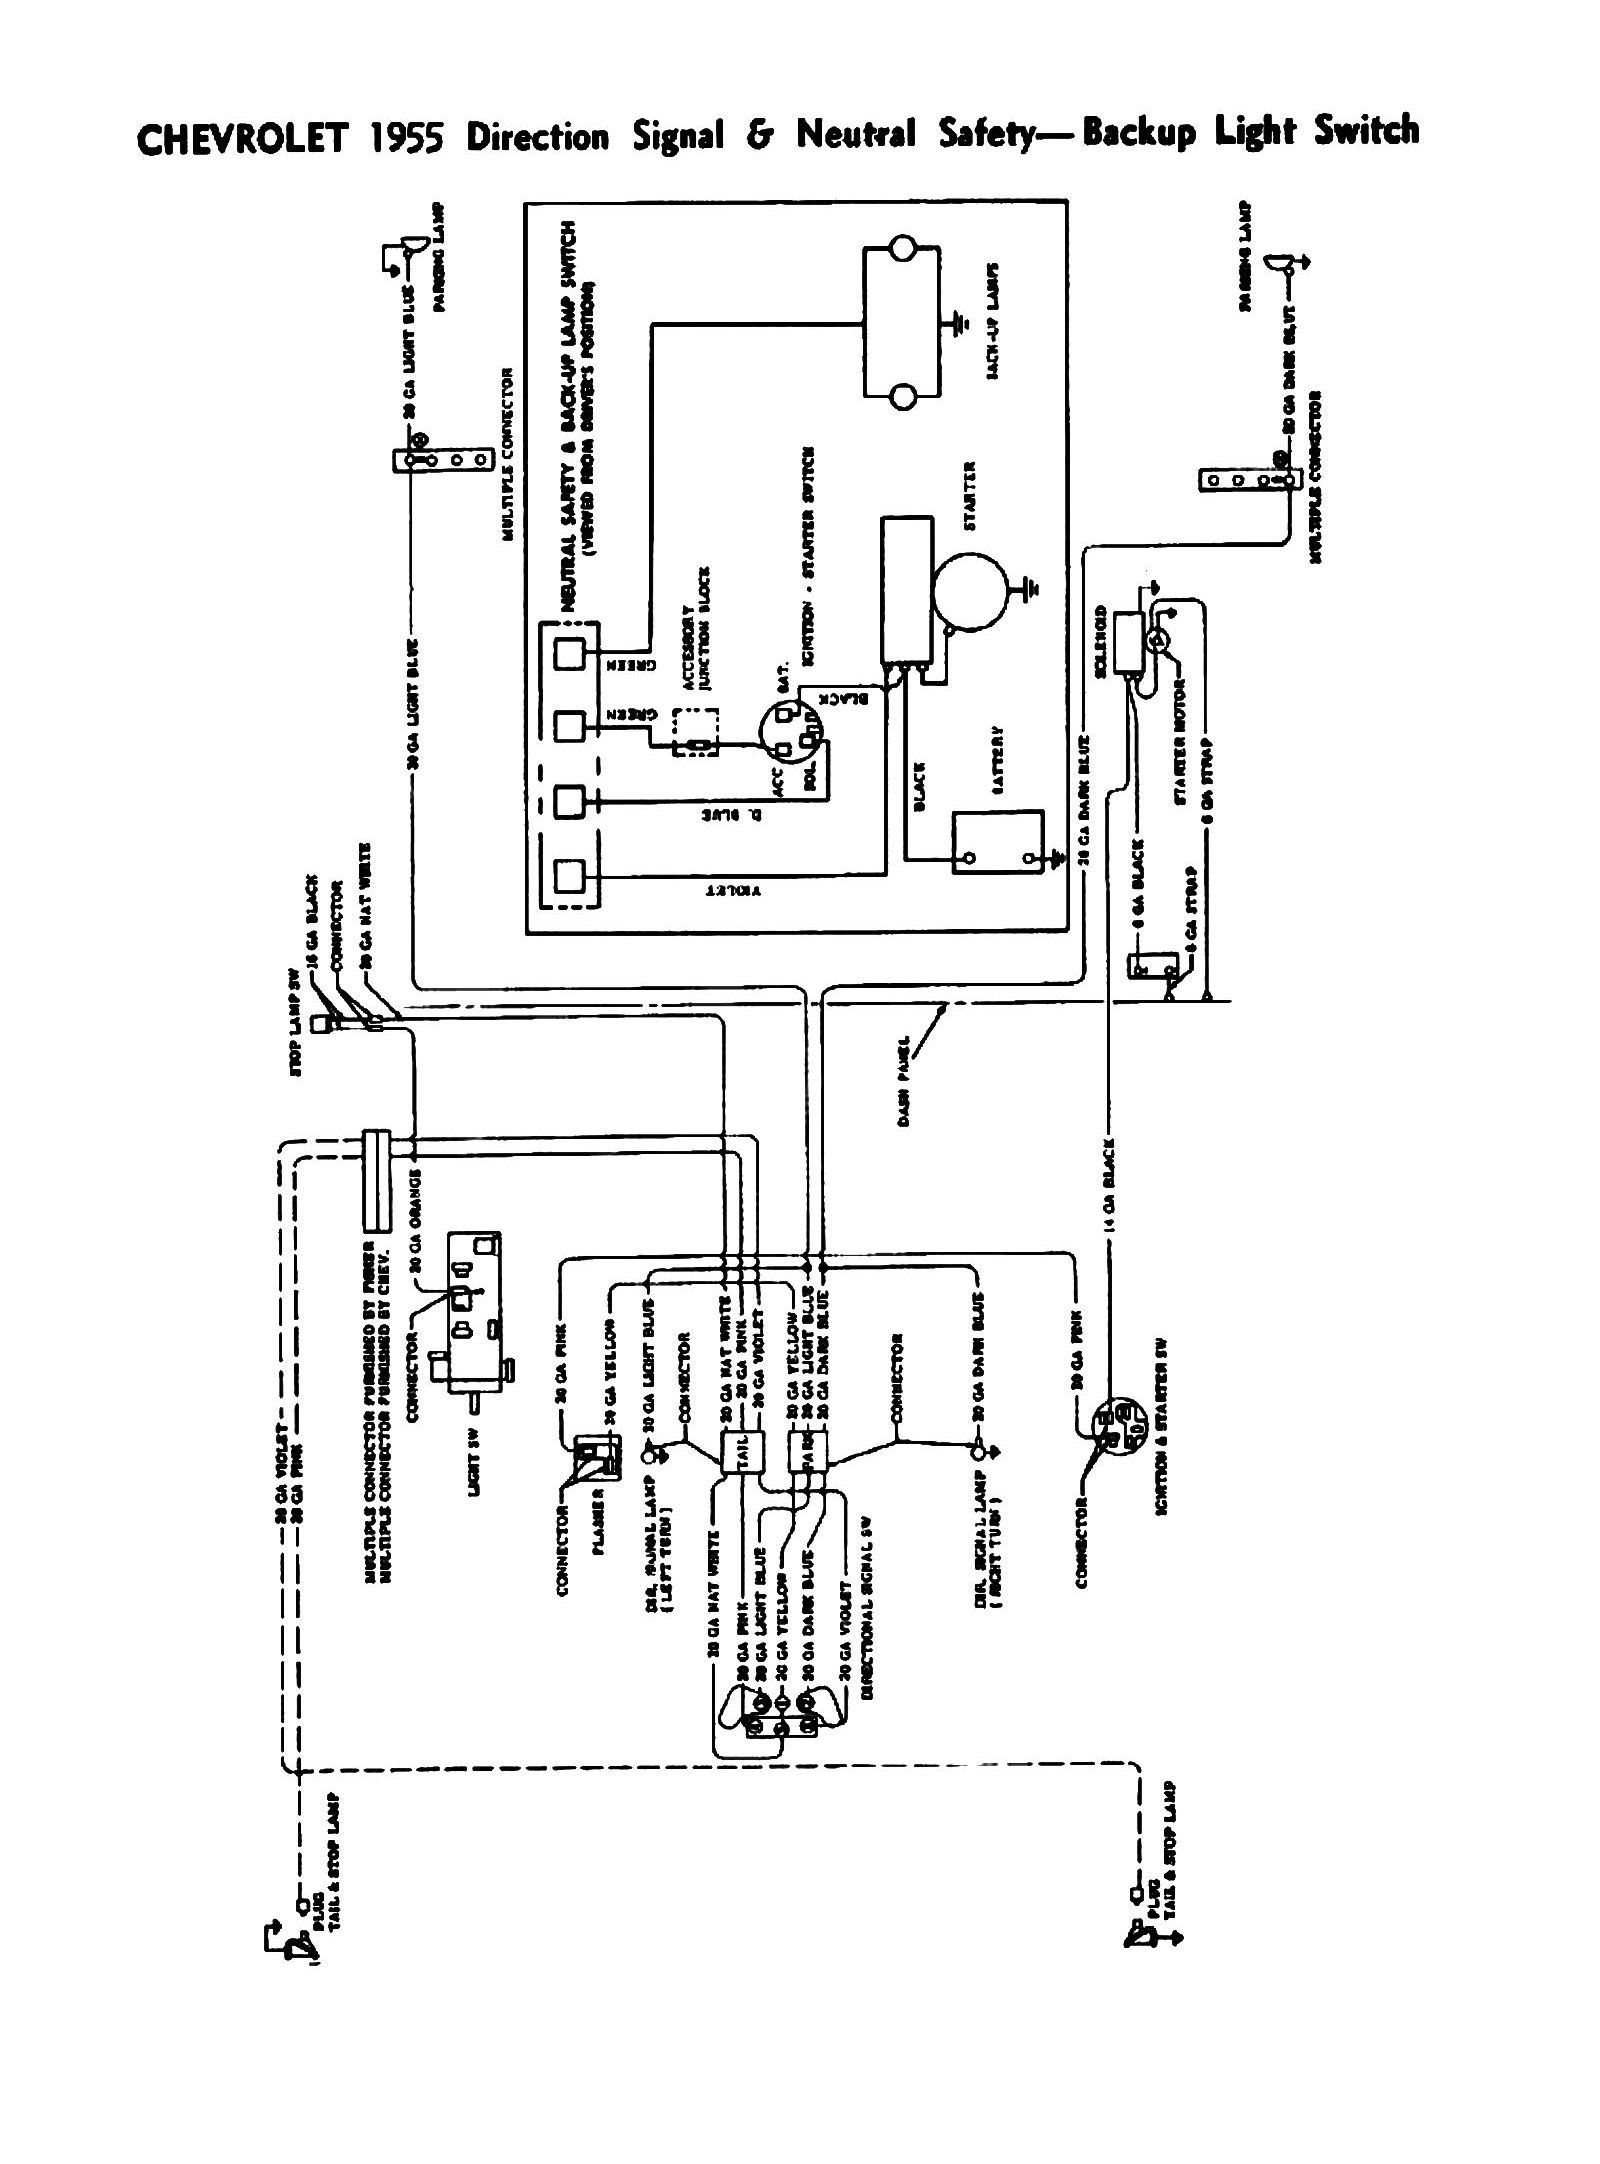 85 chevy pickup wiring diagram free download wiring diagram rh getcircuitdiagram today